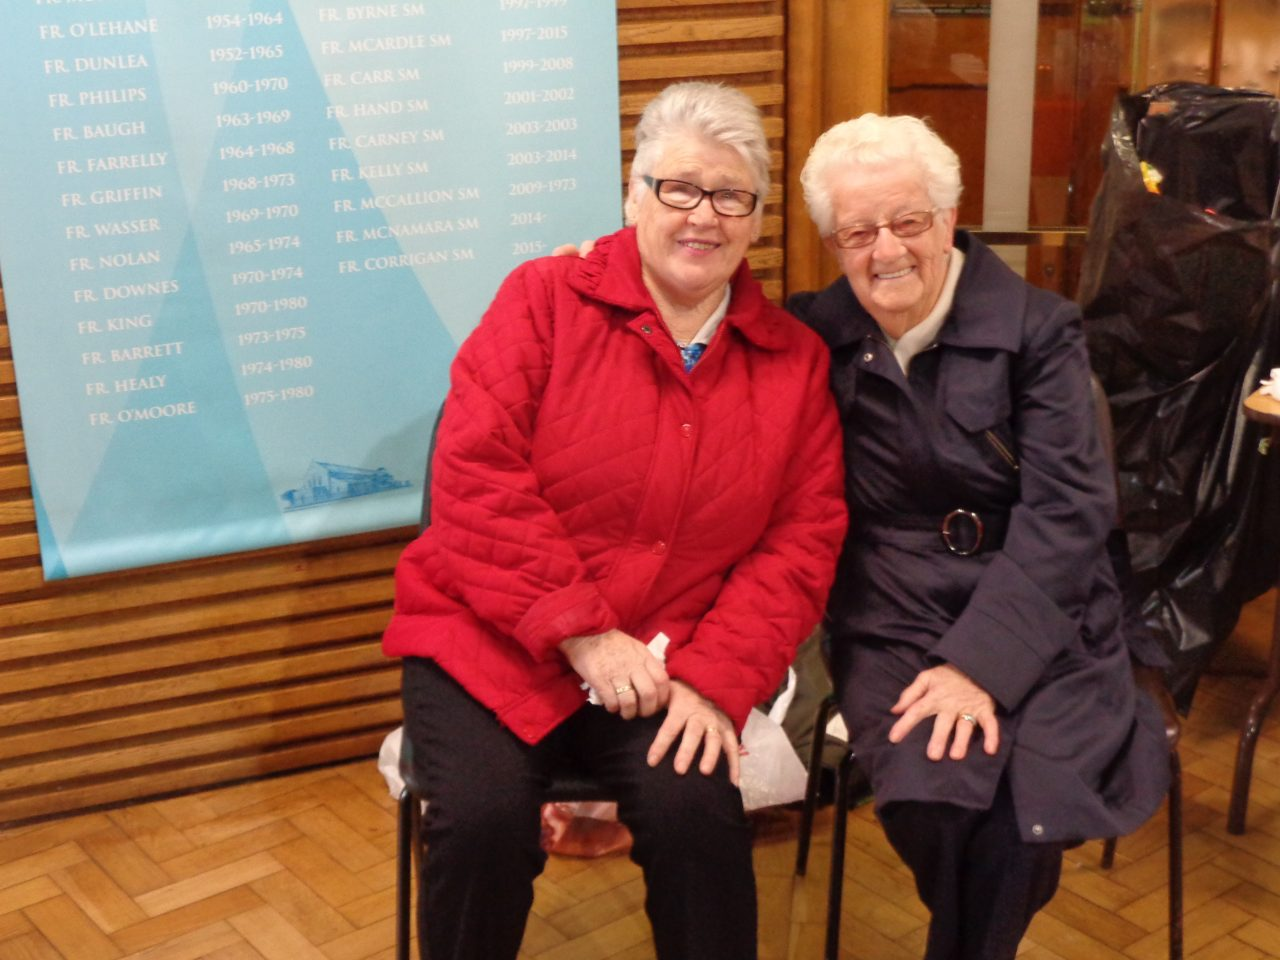 Teresa Doyle and Frances Foley at Fr. Cormac's Farewell Mass on 22nd October 2017